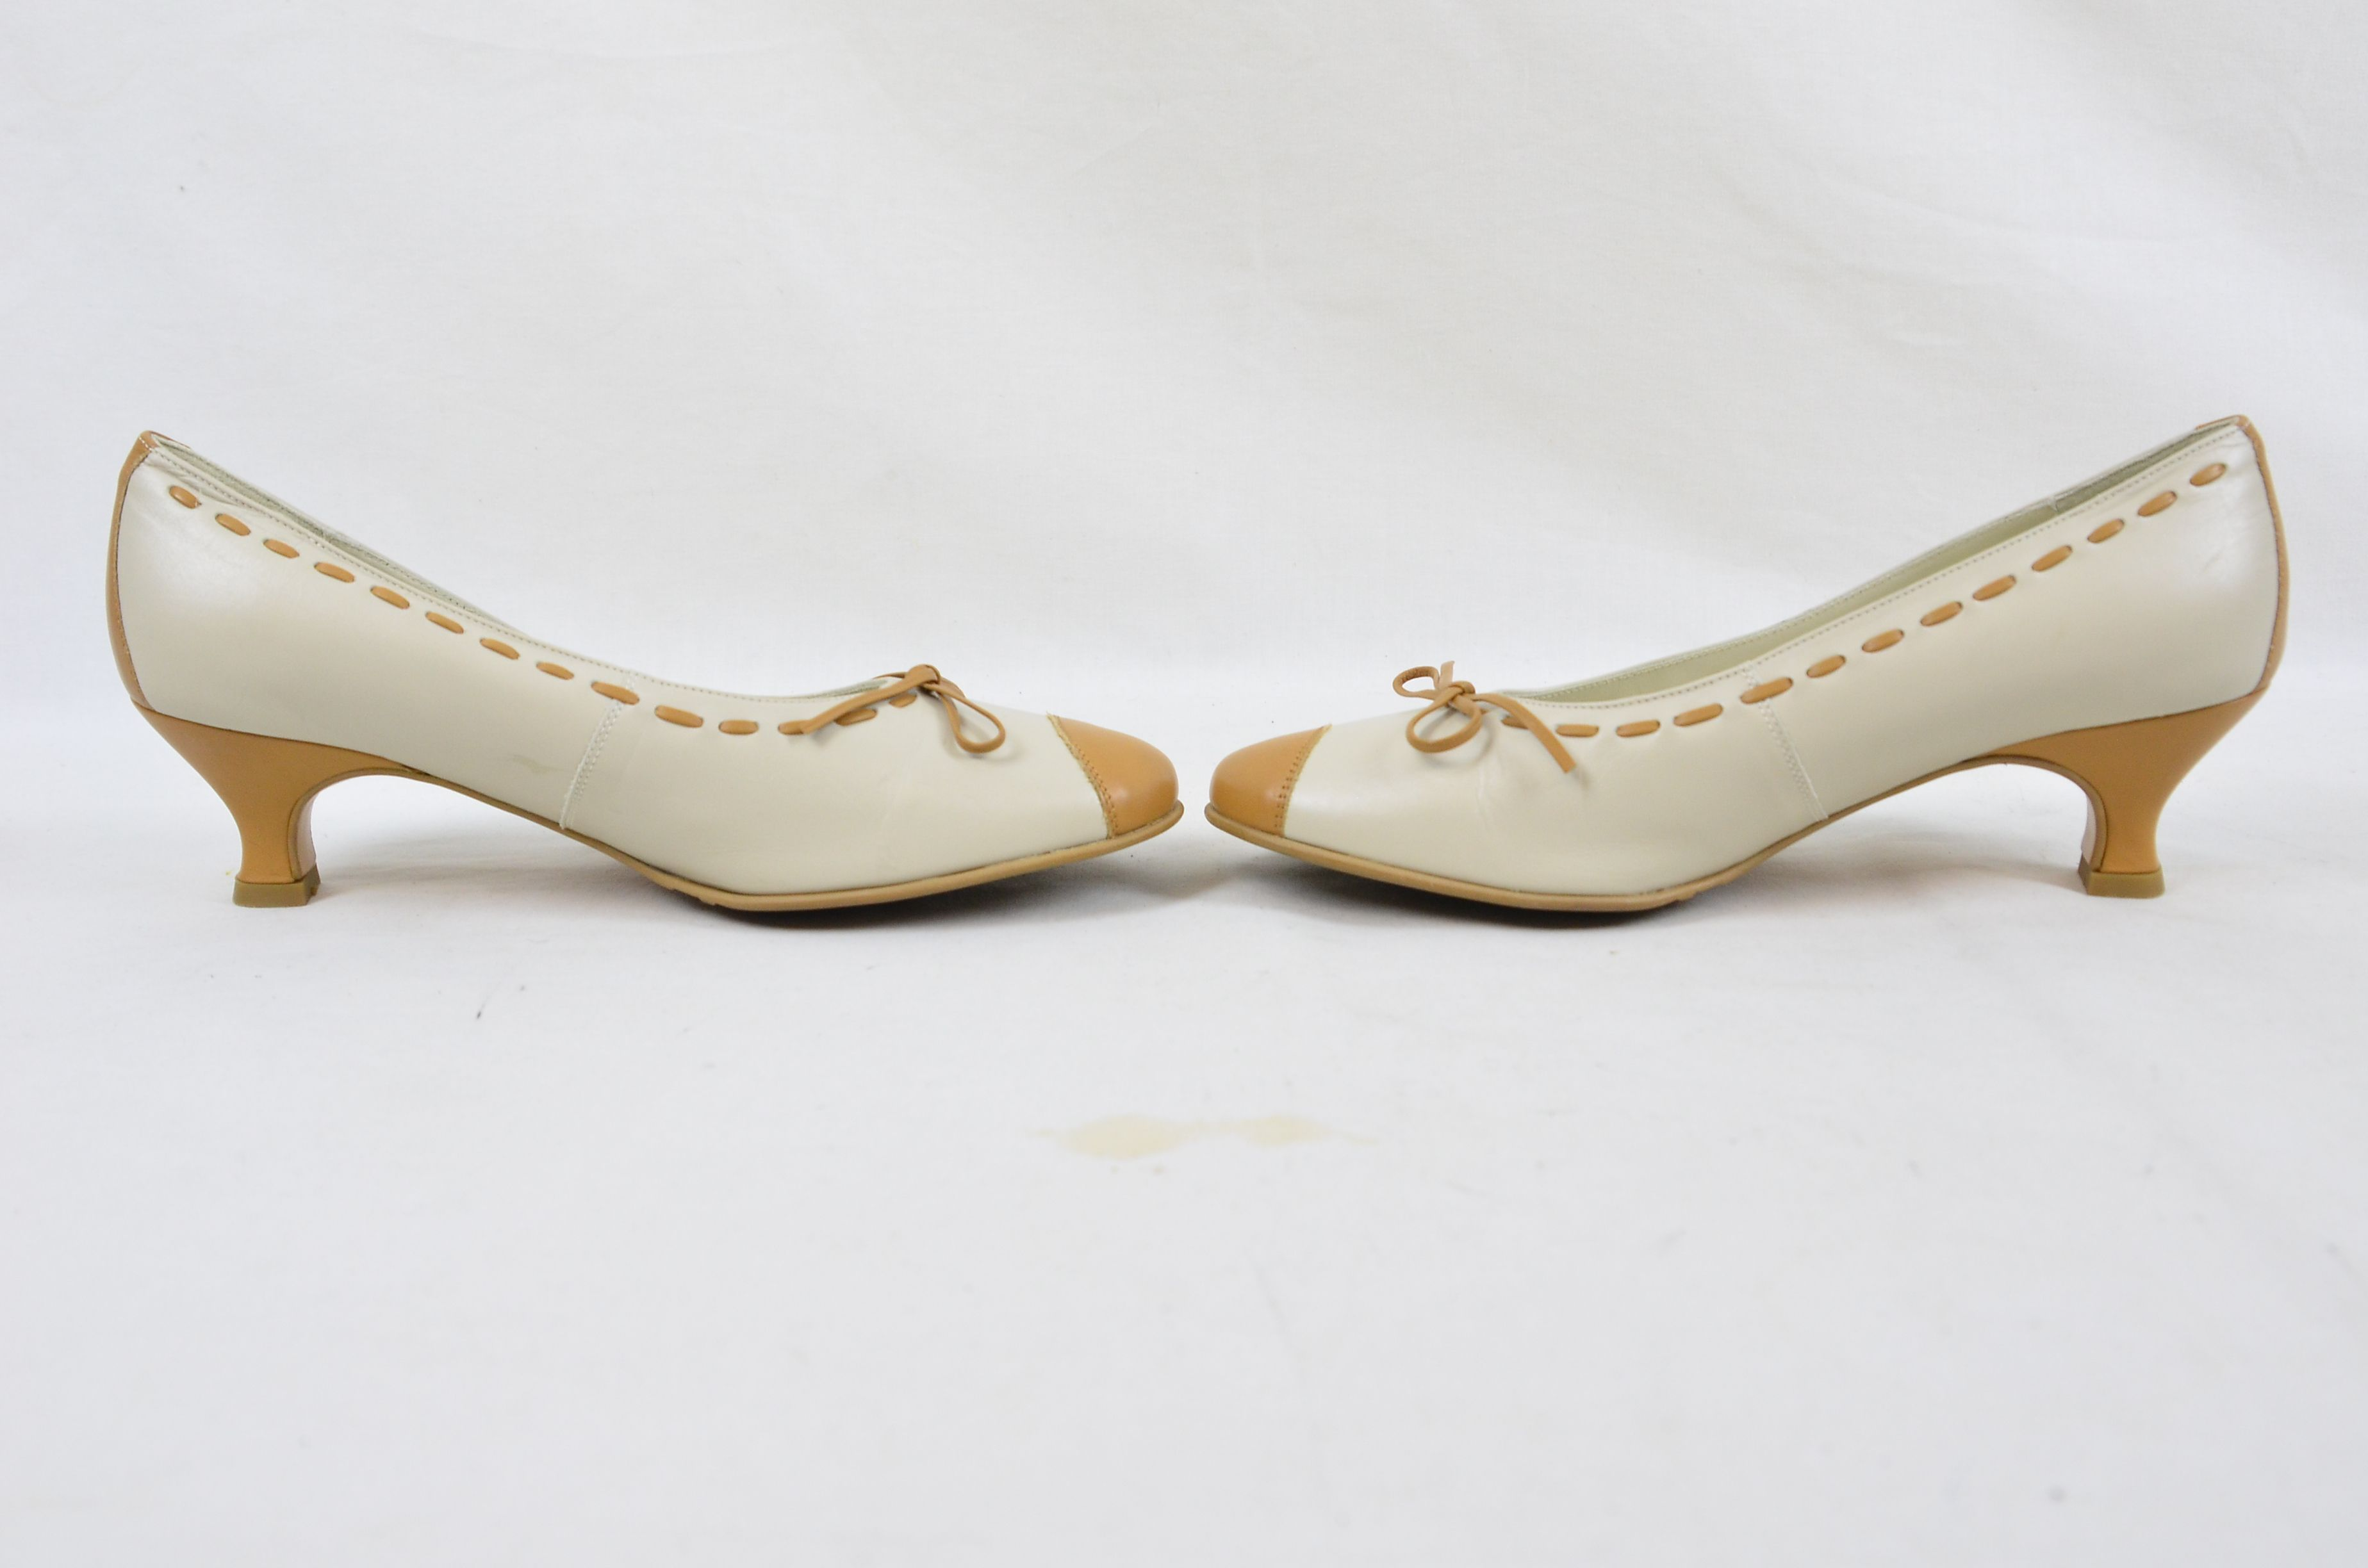 282b39df Hotter Comfort Concept White Tan Leather Ladies Shoes UK Size 4.5 6. Open  Full-Size Image